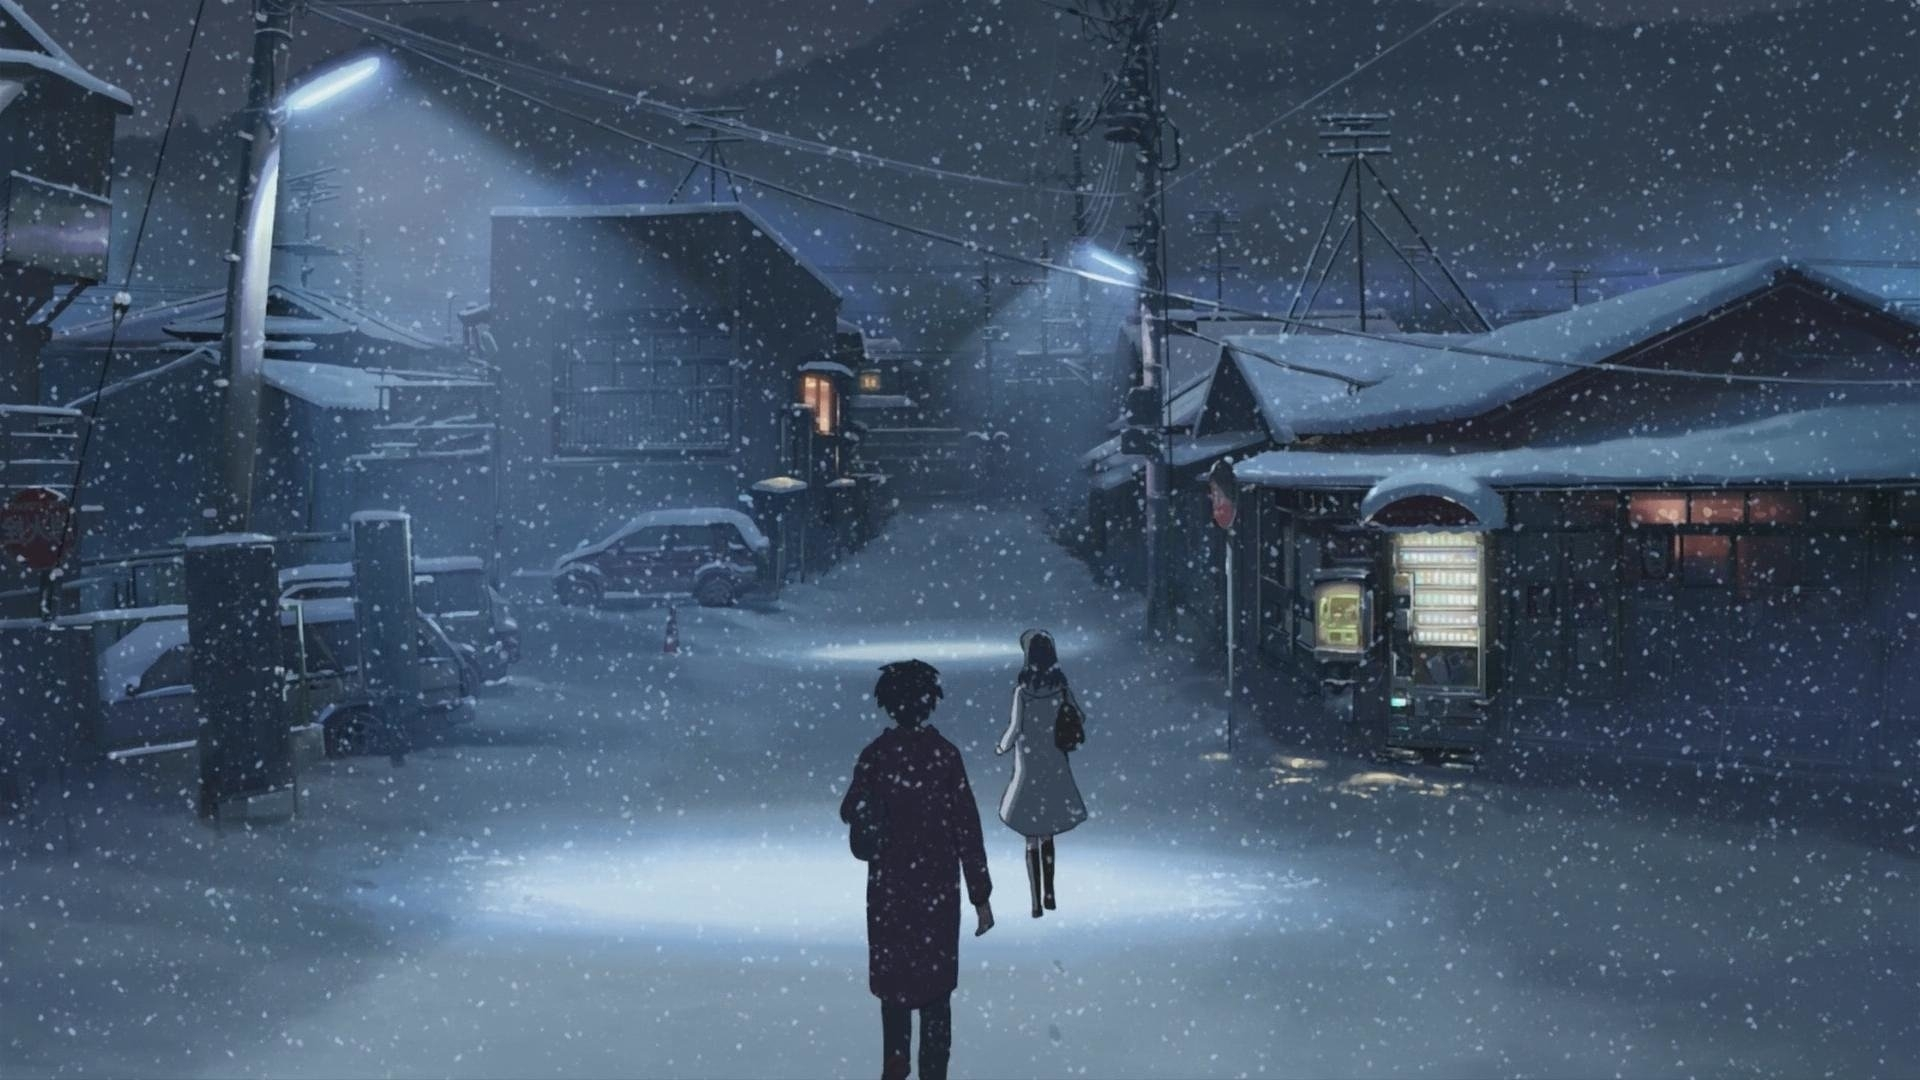 Le 160 5 Centimeters Per Second Hd Wallpapers Background Images Dimension  File Type Jpg Jpeg